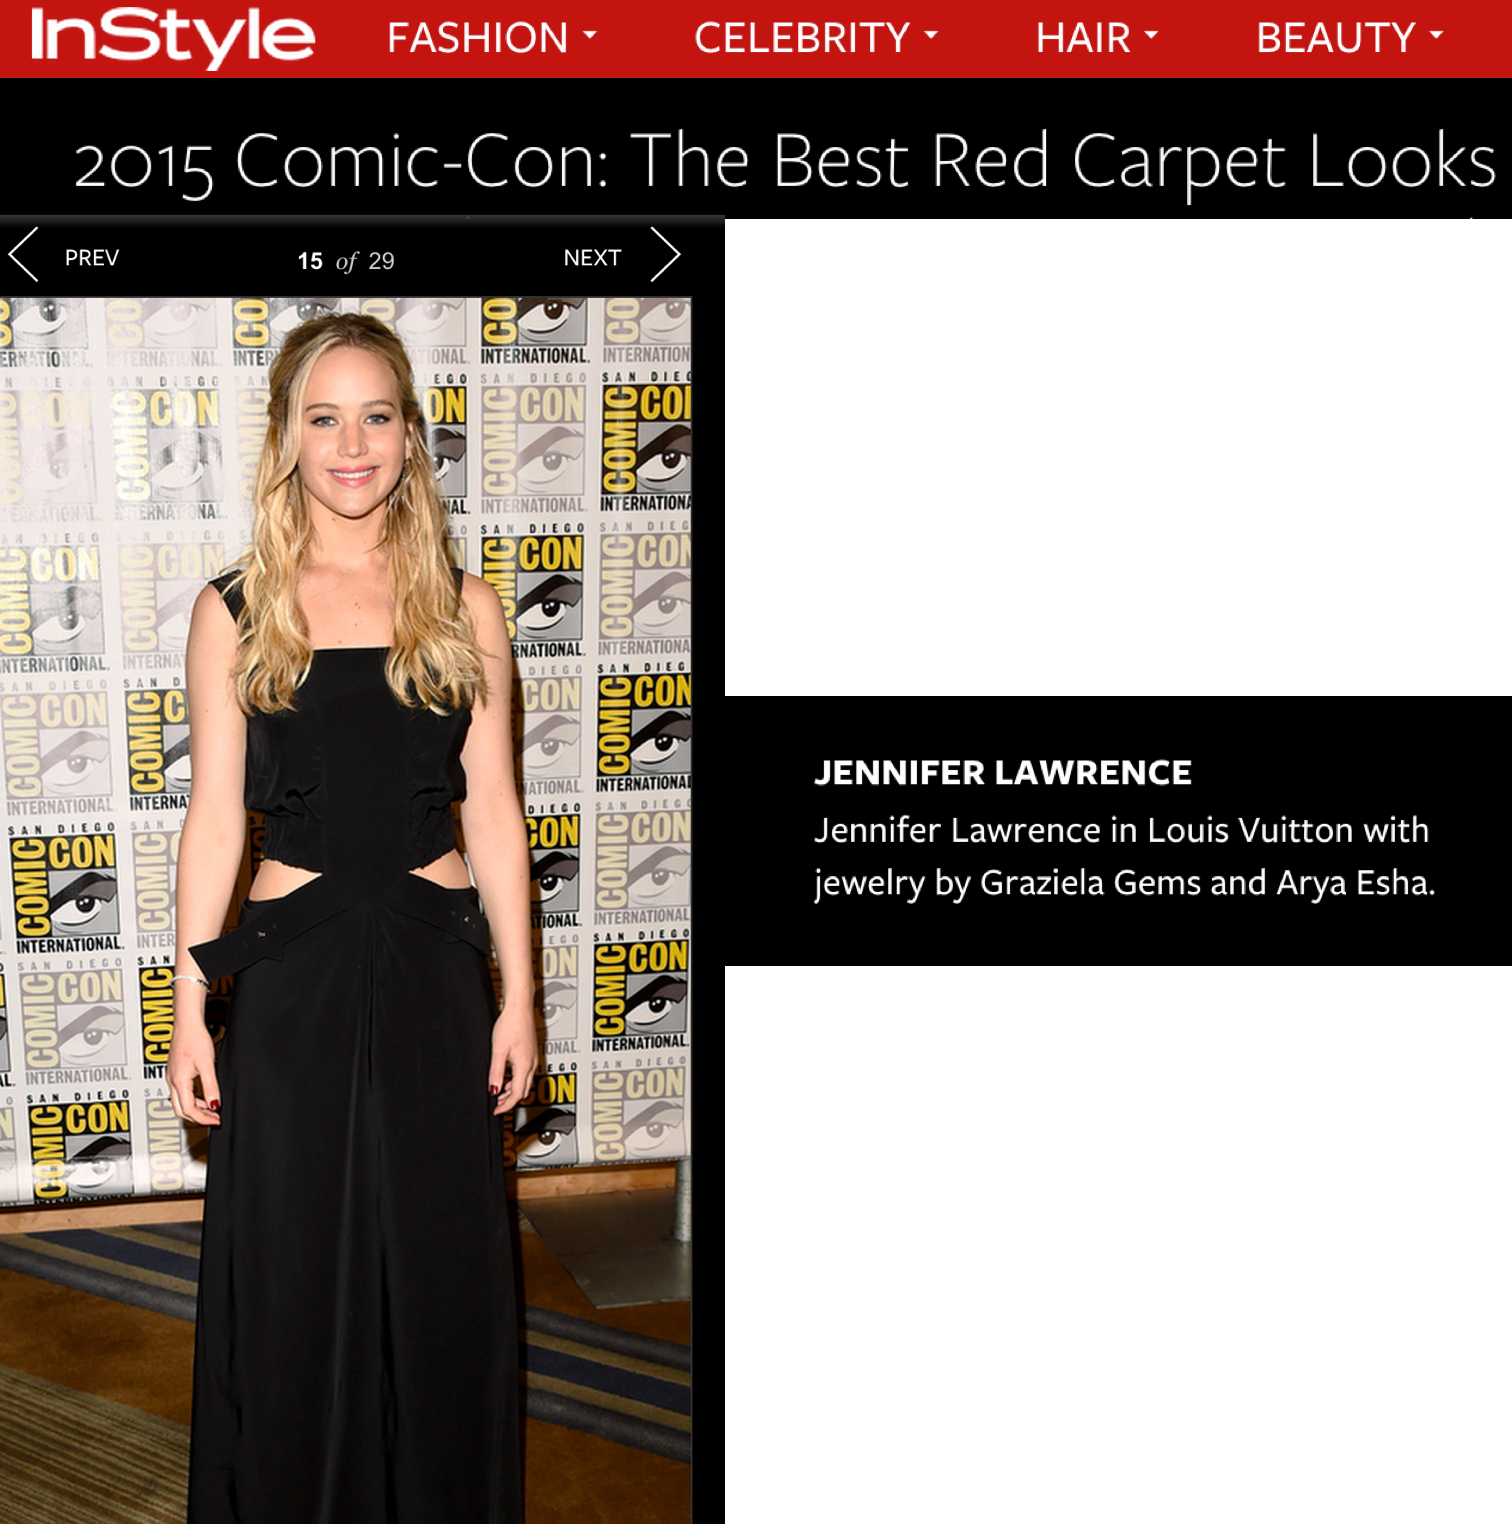 Arya Esha Ring on Jennifer Lawrence included in Best Red Carpet Looks